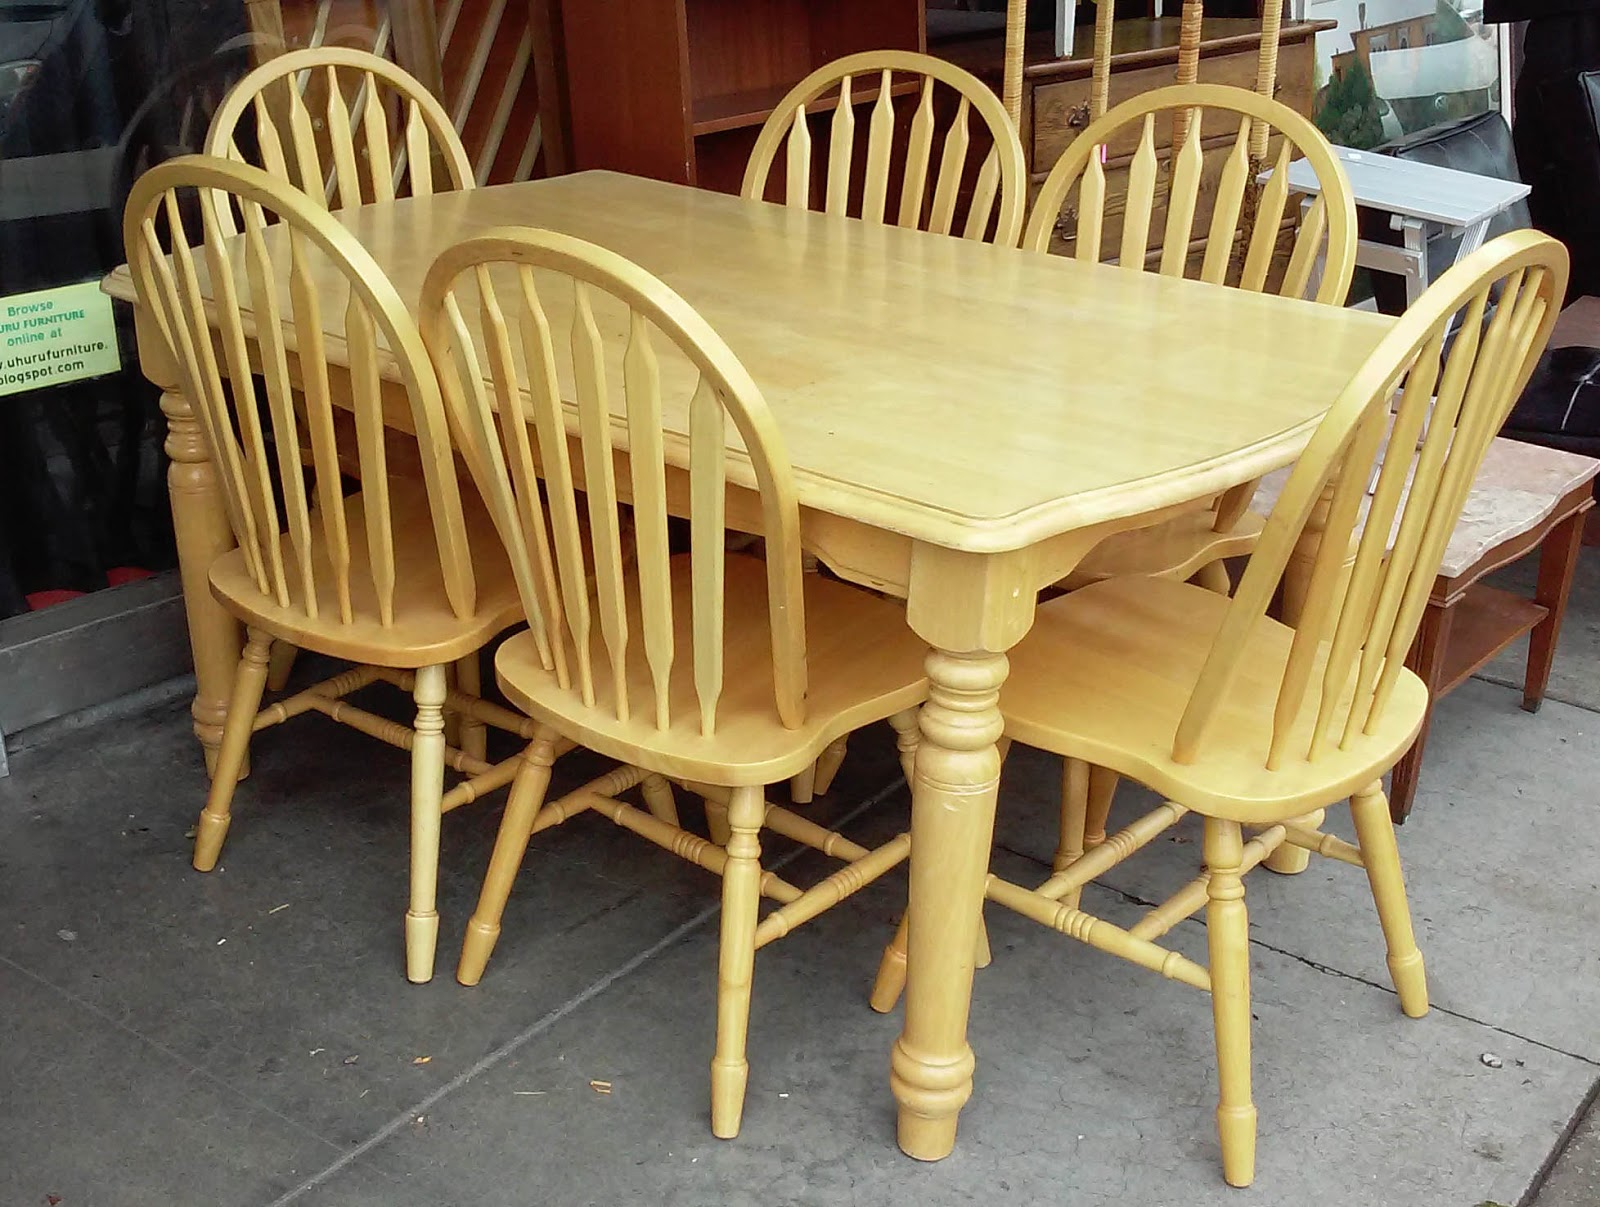 Uhuru Furniture Collectibles Sold Reduced Blond Butcher Block Table And 6 Chair Set 90